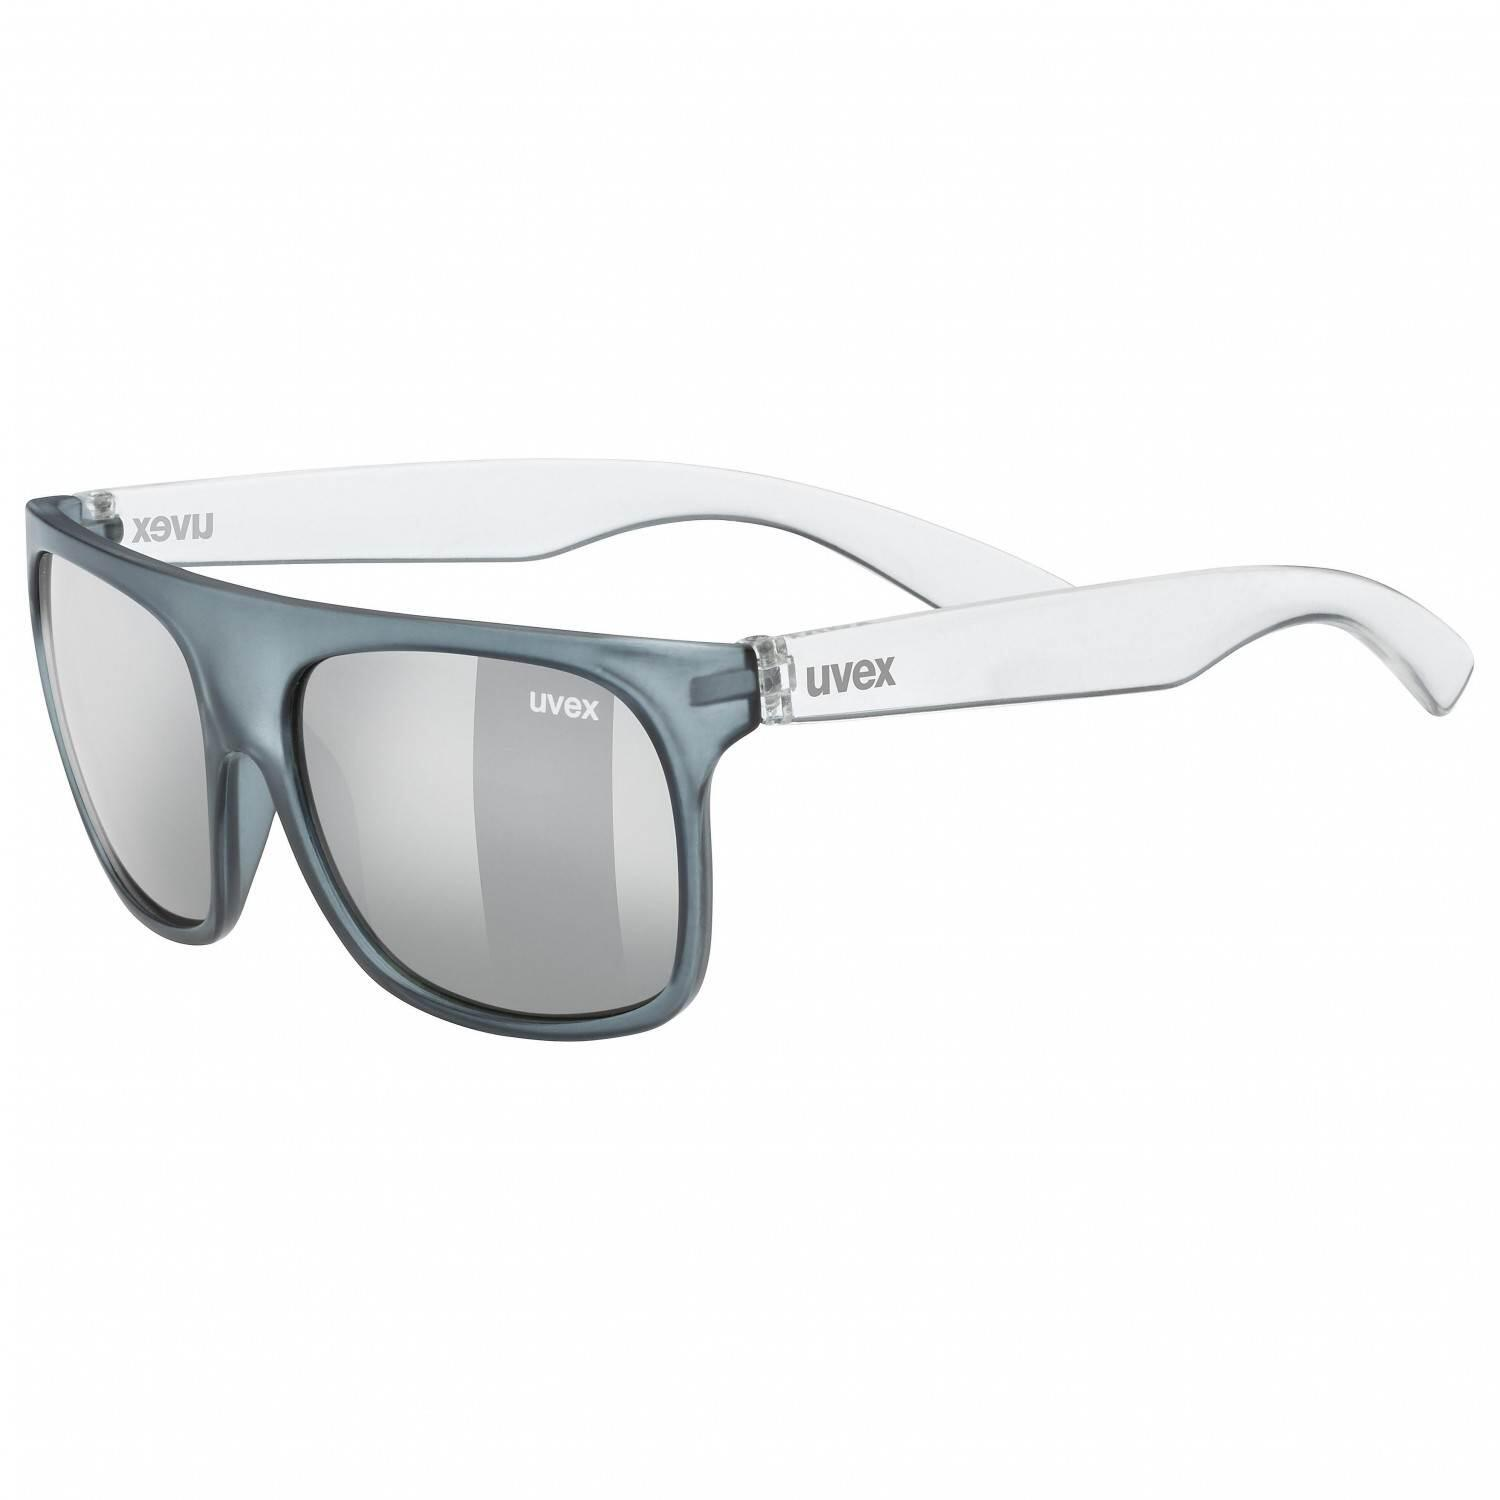 uvex-sportstyle-511-kinder-sportbrille-farbe-5916-grey-clear-litemirror-silver-s3-